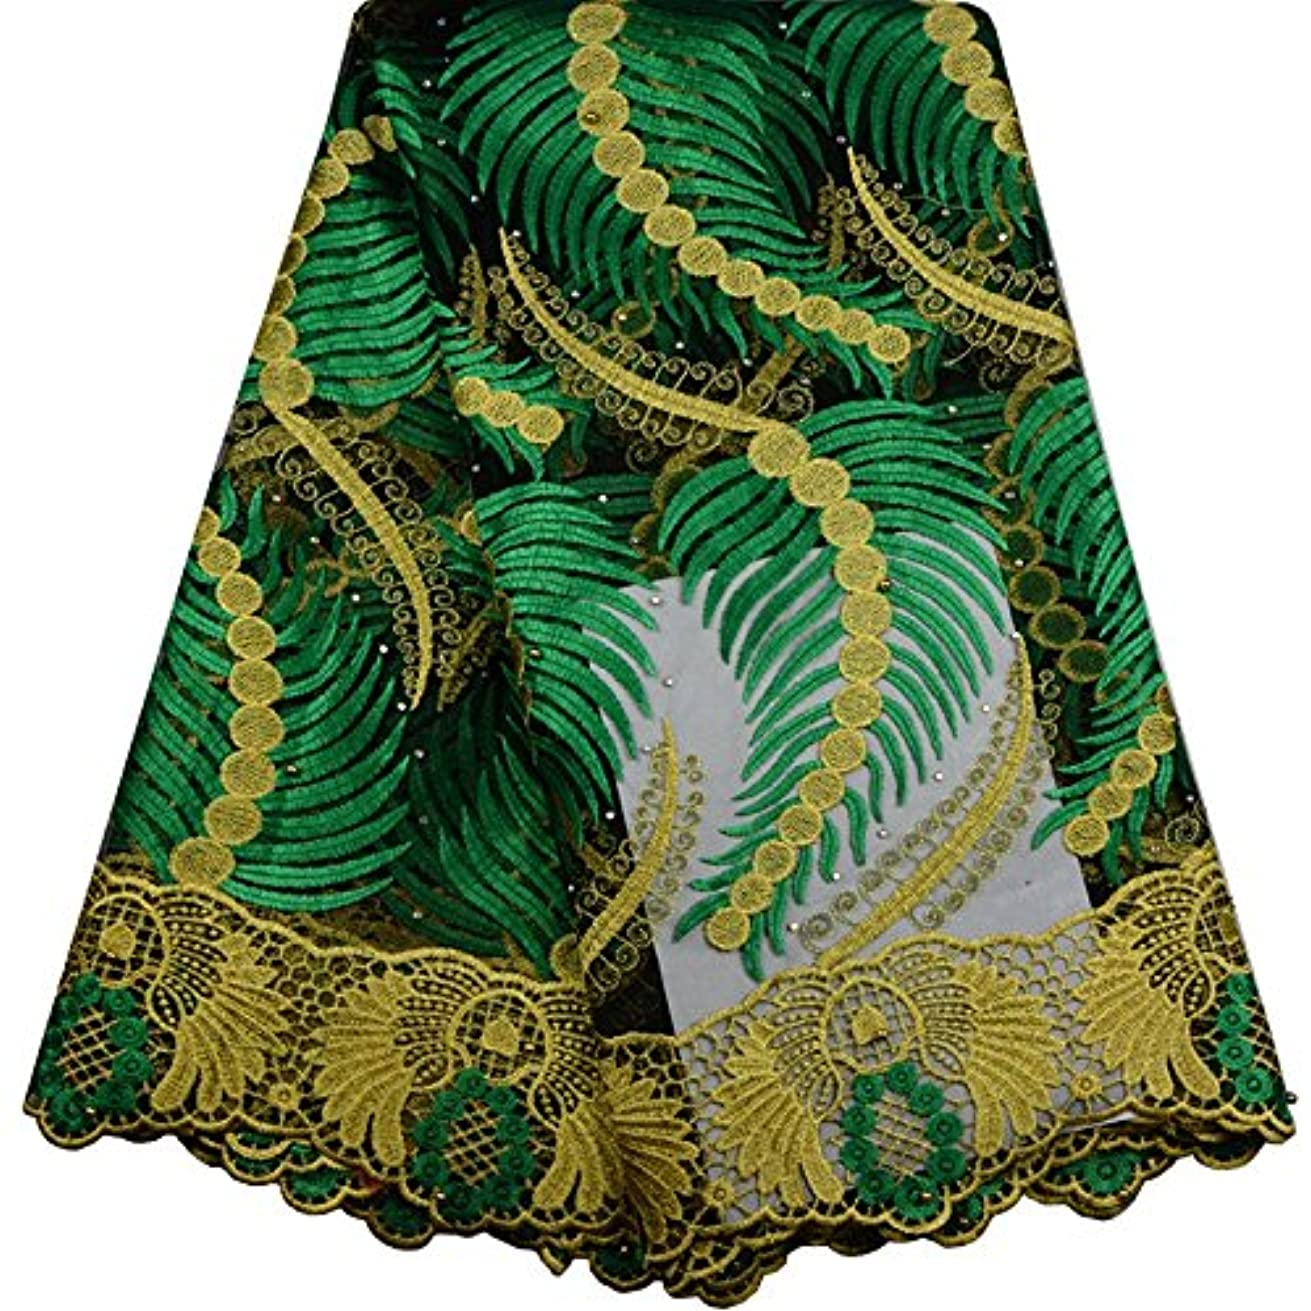 KENLACE 5Yards African Cord Lace French Lace Fabric with Stones Blue Color African Lace Fabric for Nigerian Wedding Dress (Green)